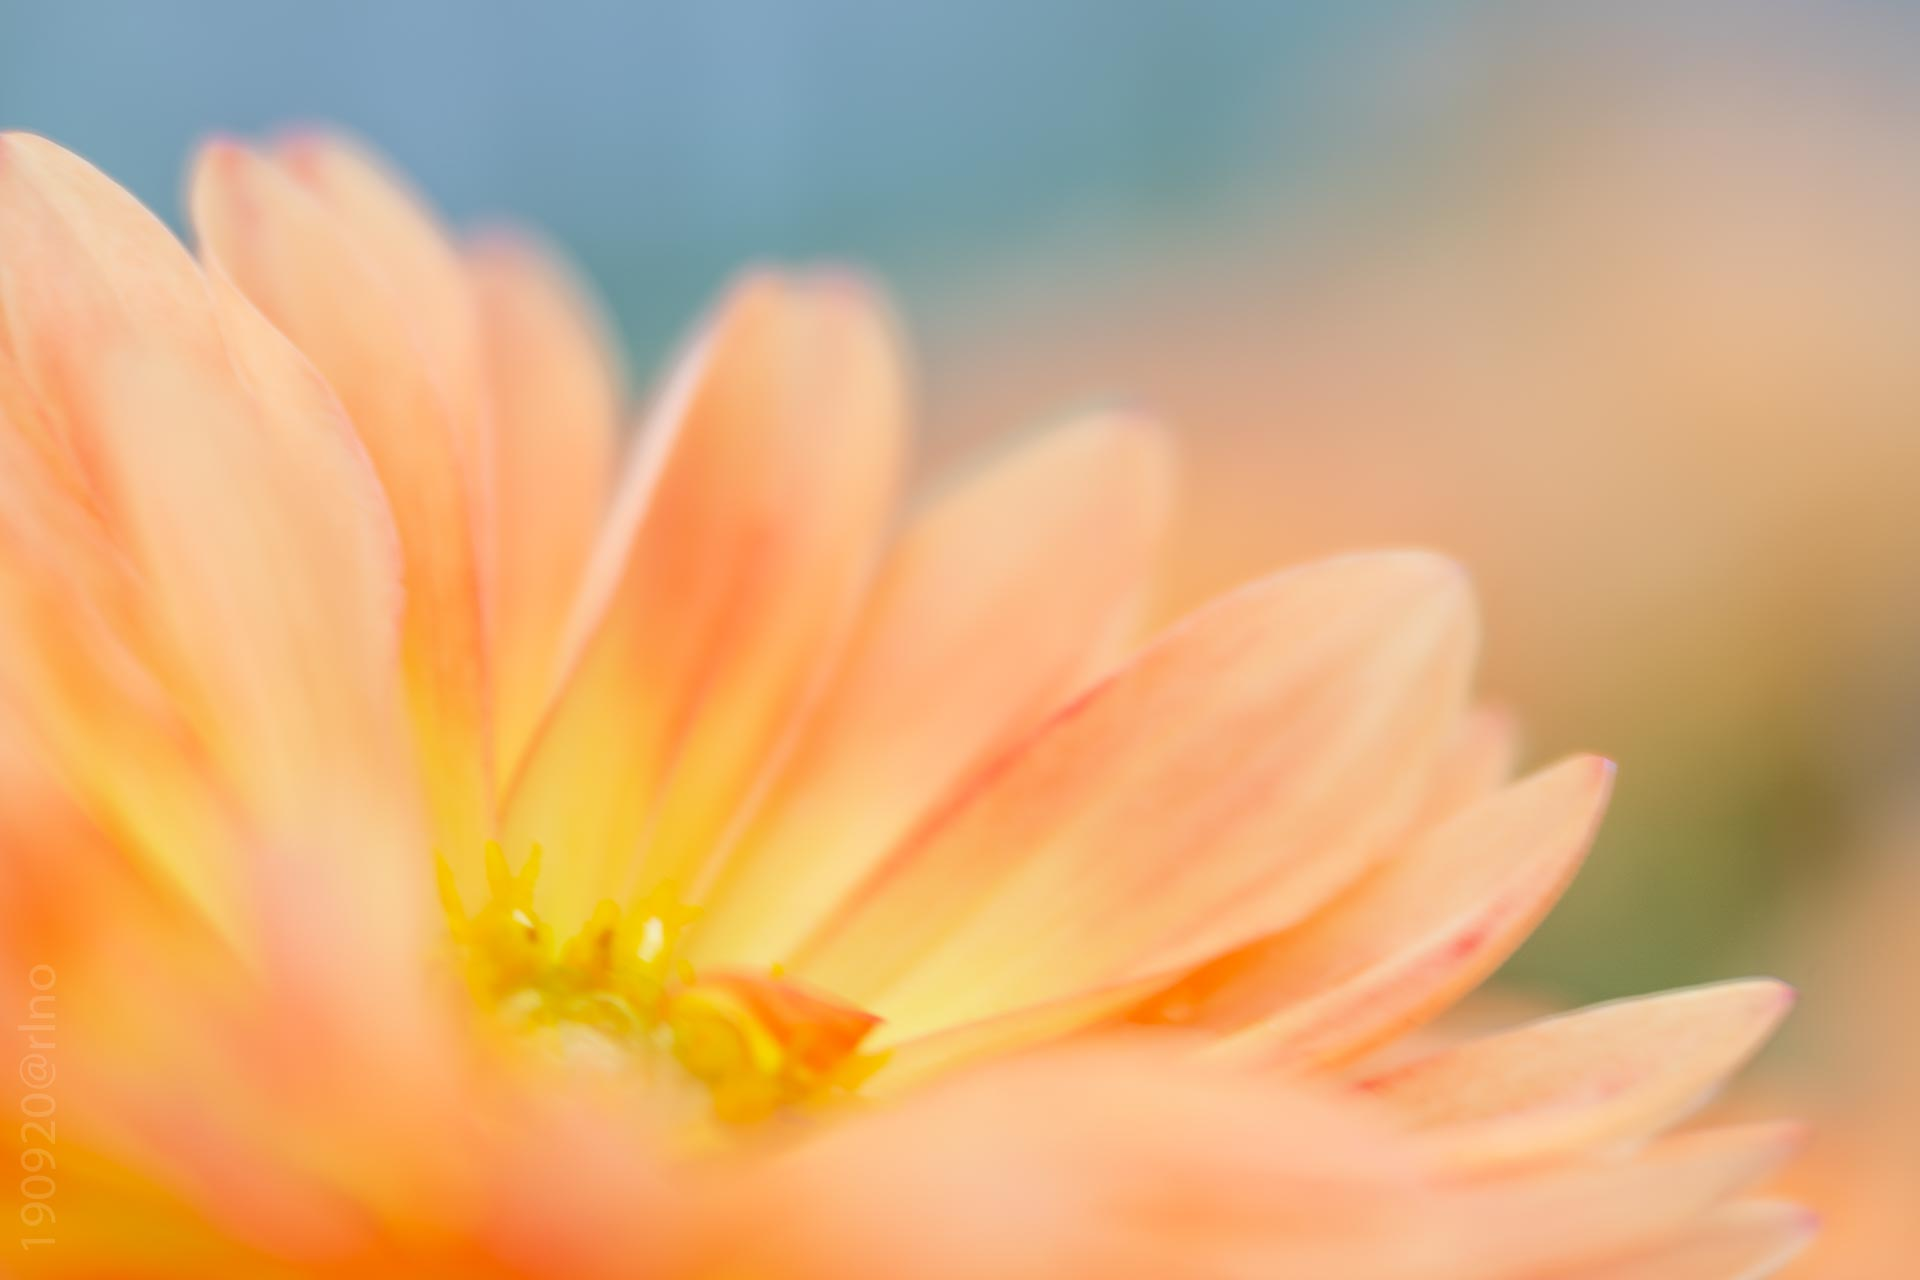 Peachy soft focus flower